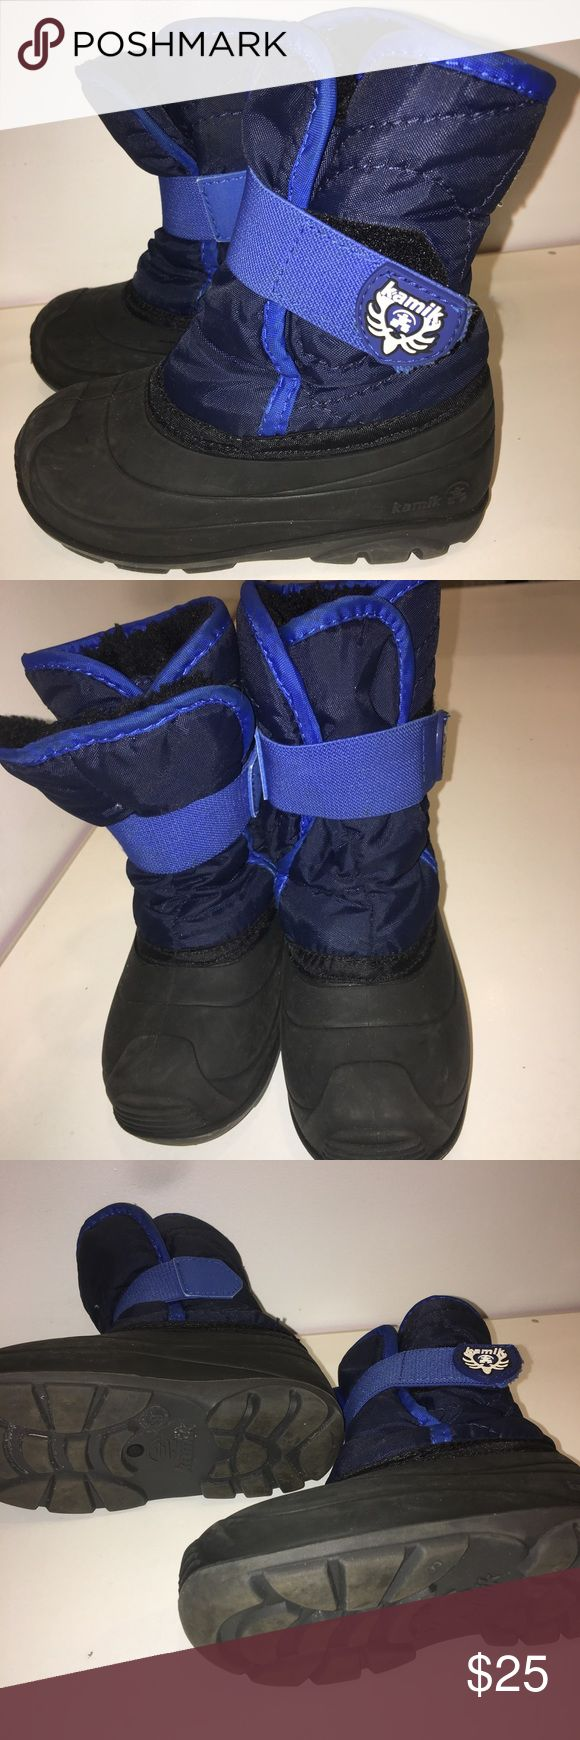 Kamik winter boots size 9. Only worn a few times. Kamik winter boots size 9. Only worn a few times.  Great condition.  One season Kamik Shoes Boots